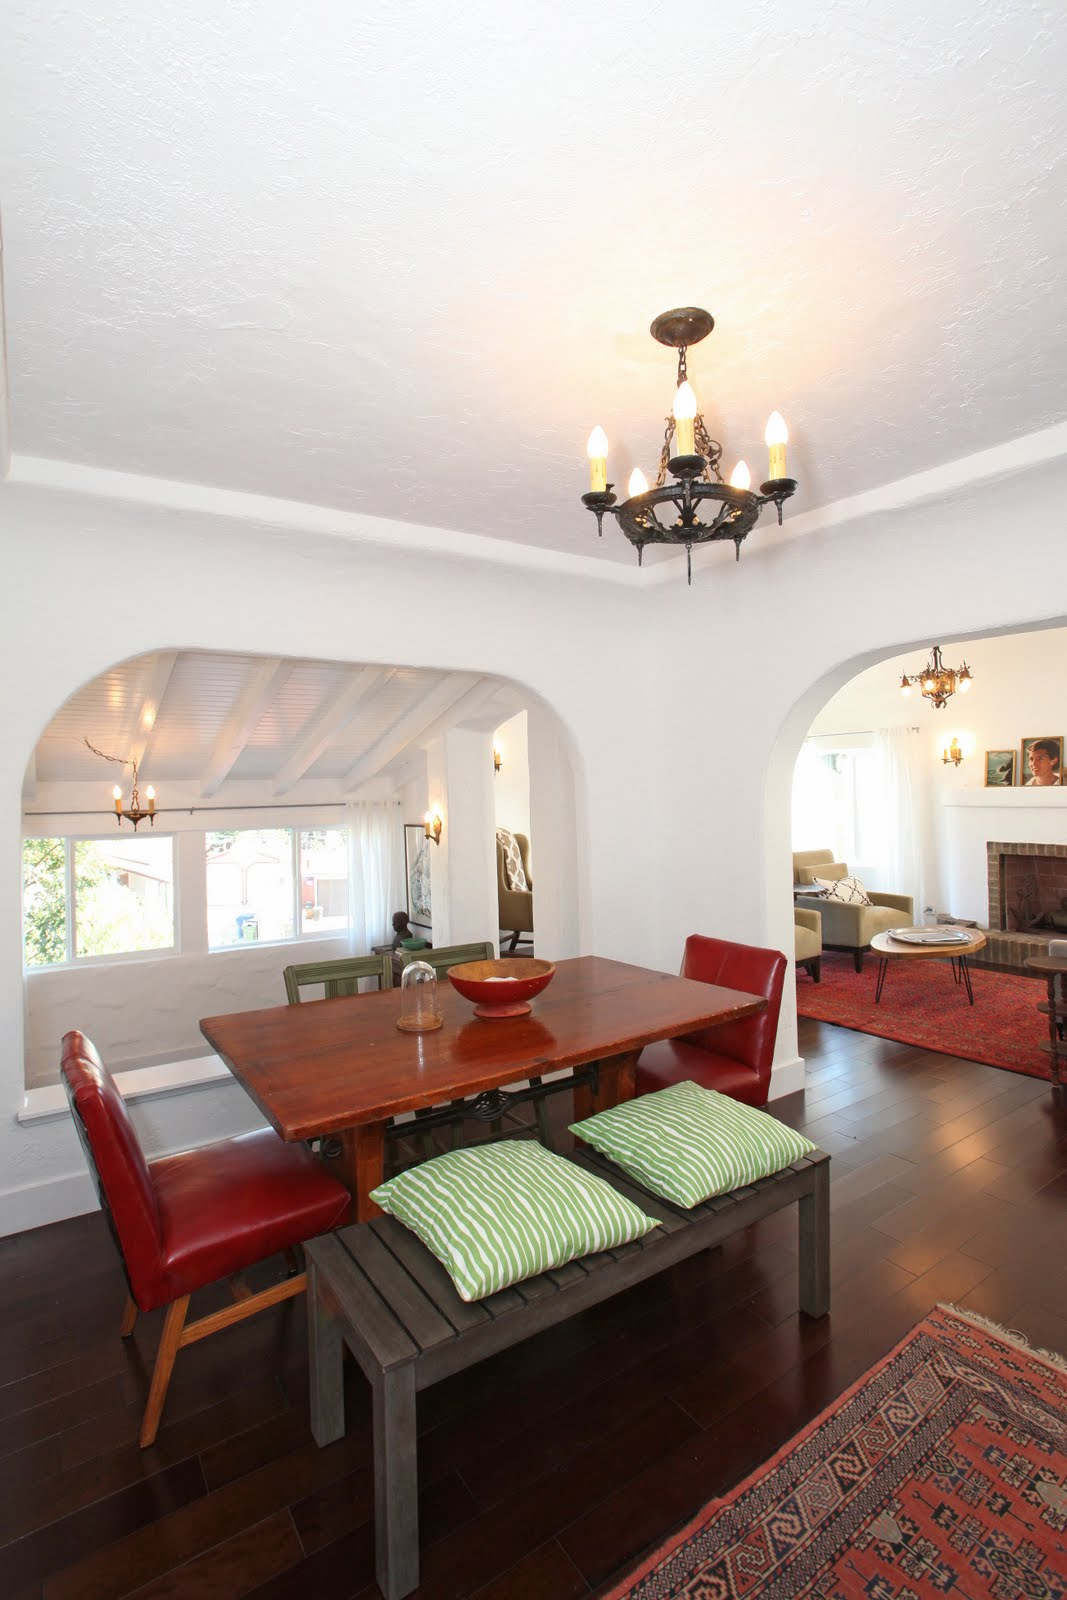 COCOCOZY: SEE THIS HOUSE: SPANISH STYLE CHARMER!